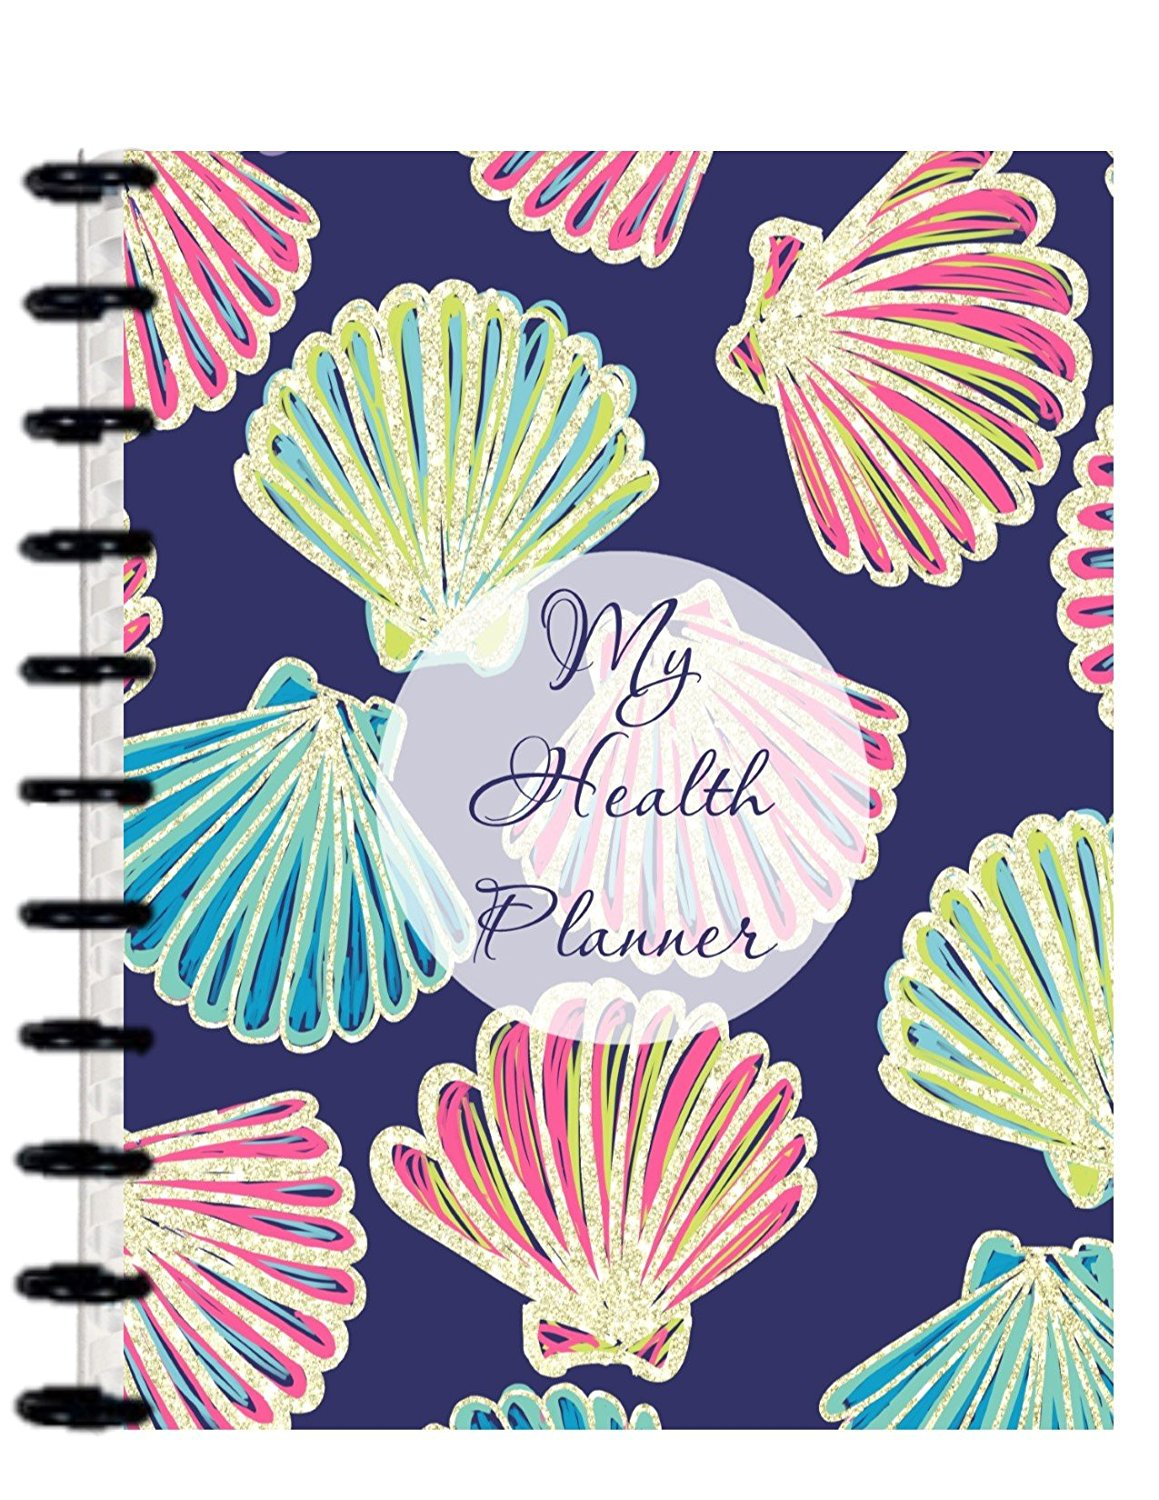 Creative Chef Planners Diet and fitness journal, Health and fitness planner, Fitness meal planner, Health Planner, Fitness Tracker, Meal Planner, Health Journal, Fitness Journal